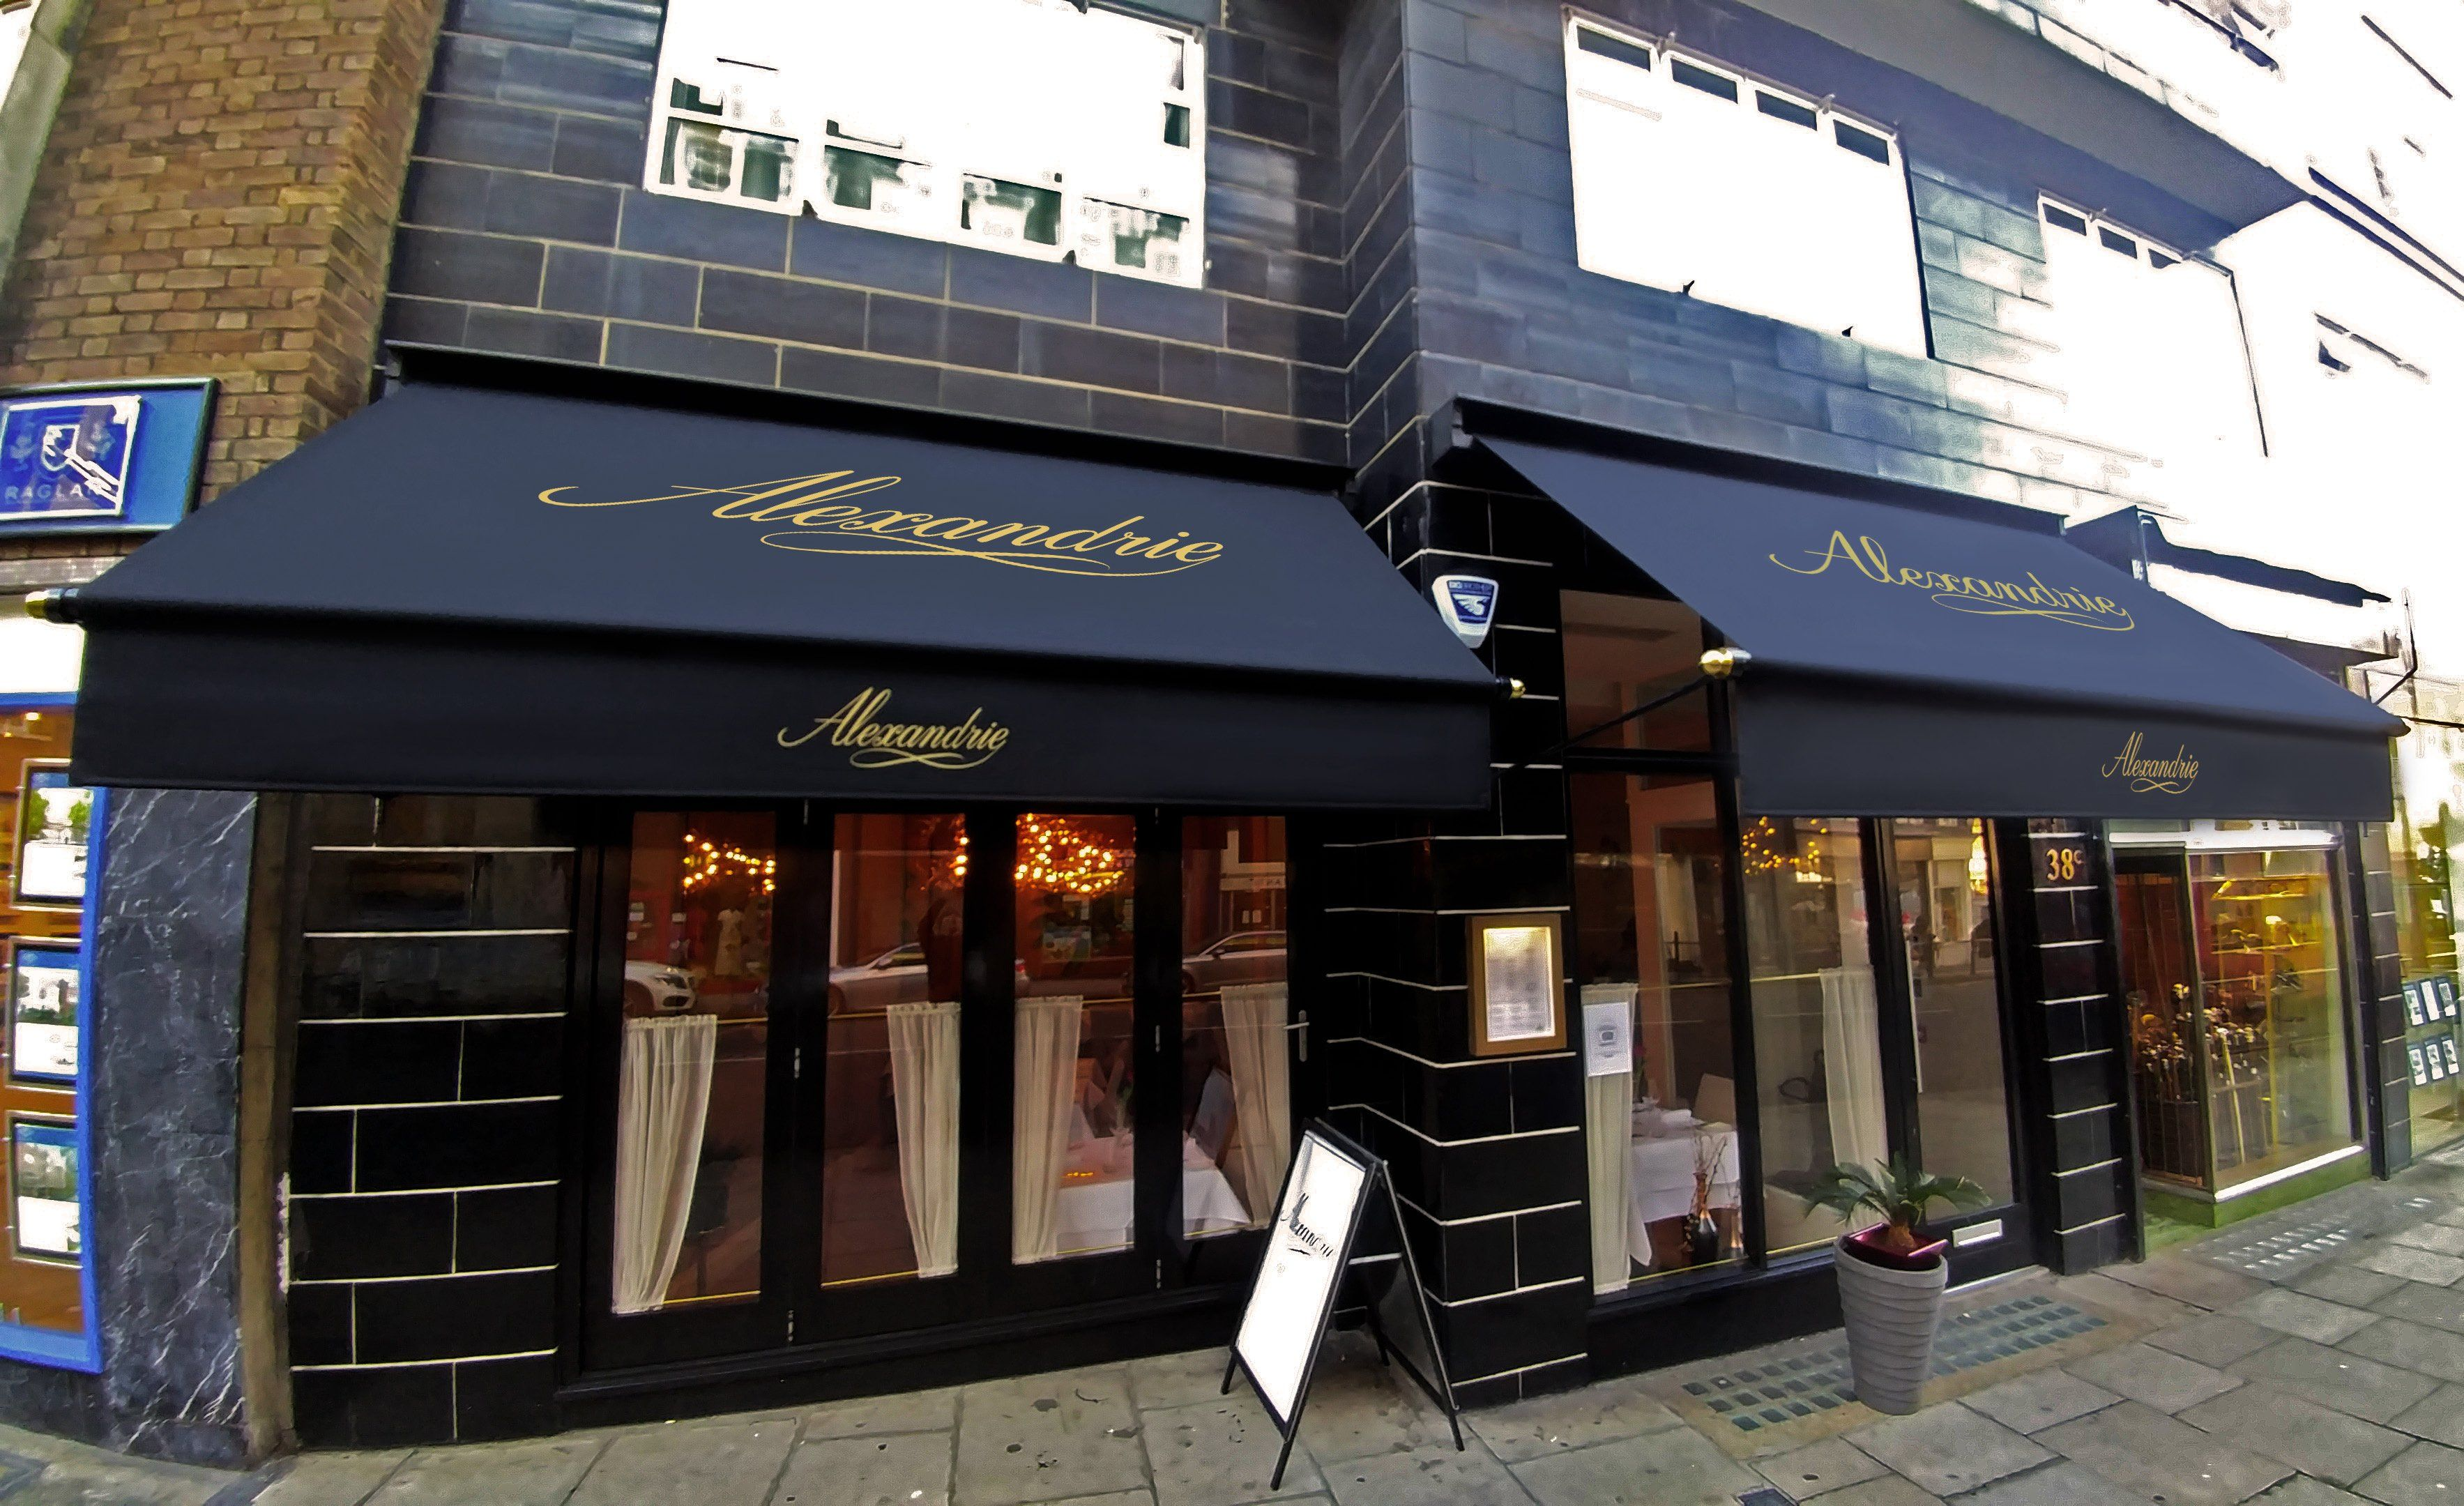 Awnings At Alexandrie Restaurant Awnings We Made Pinterest